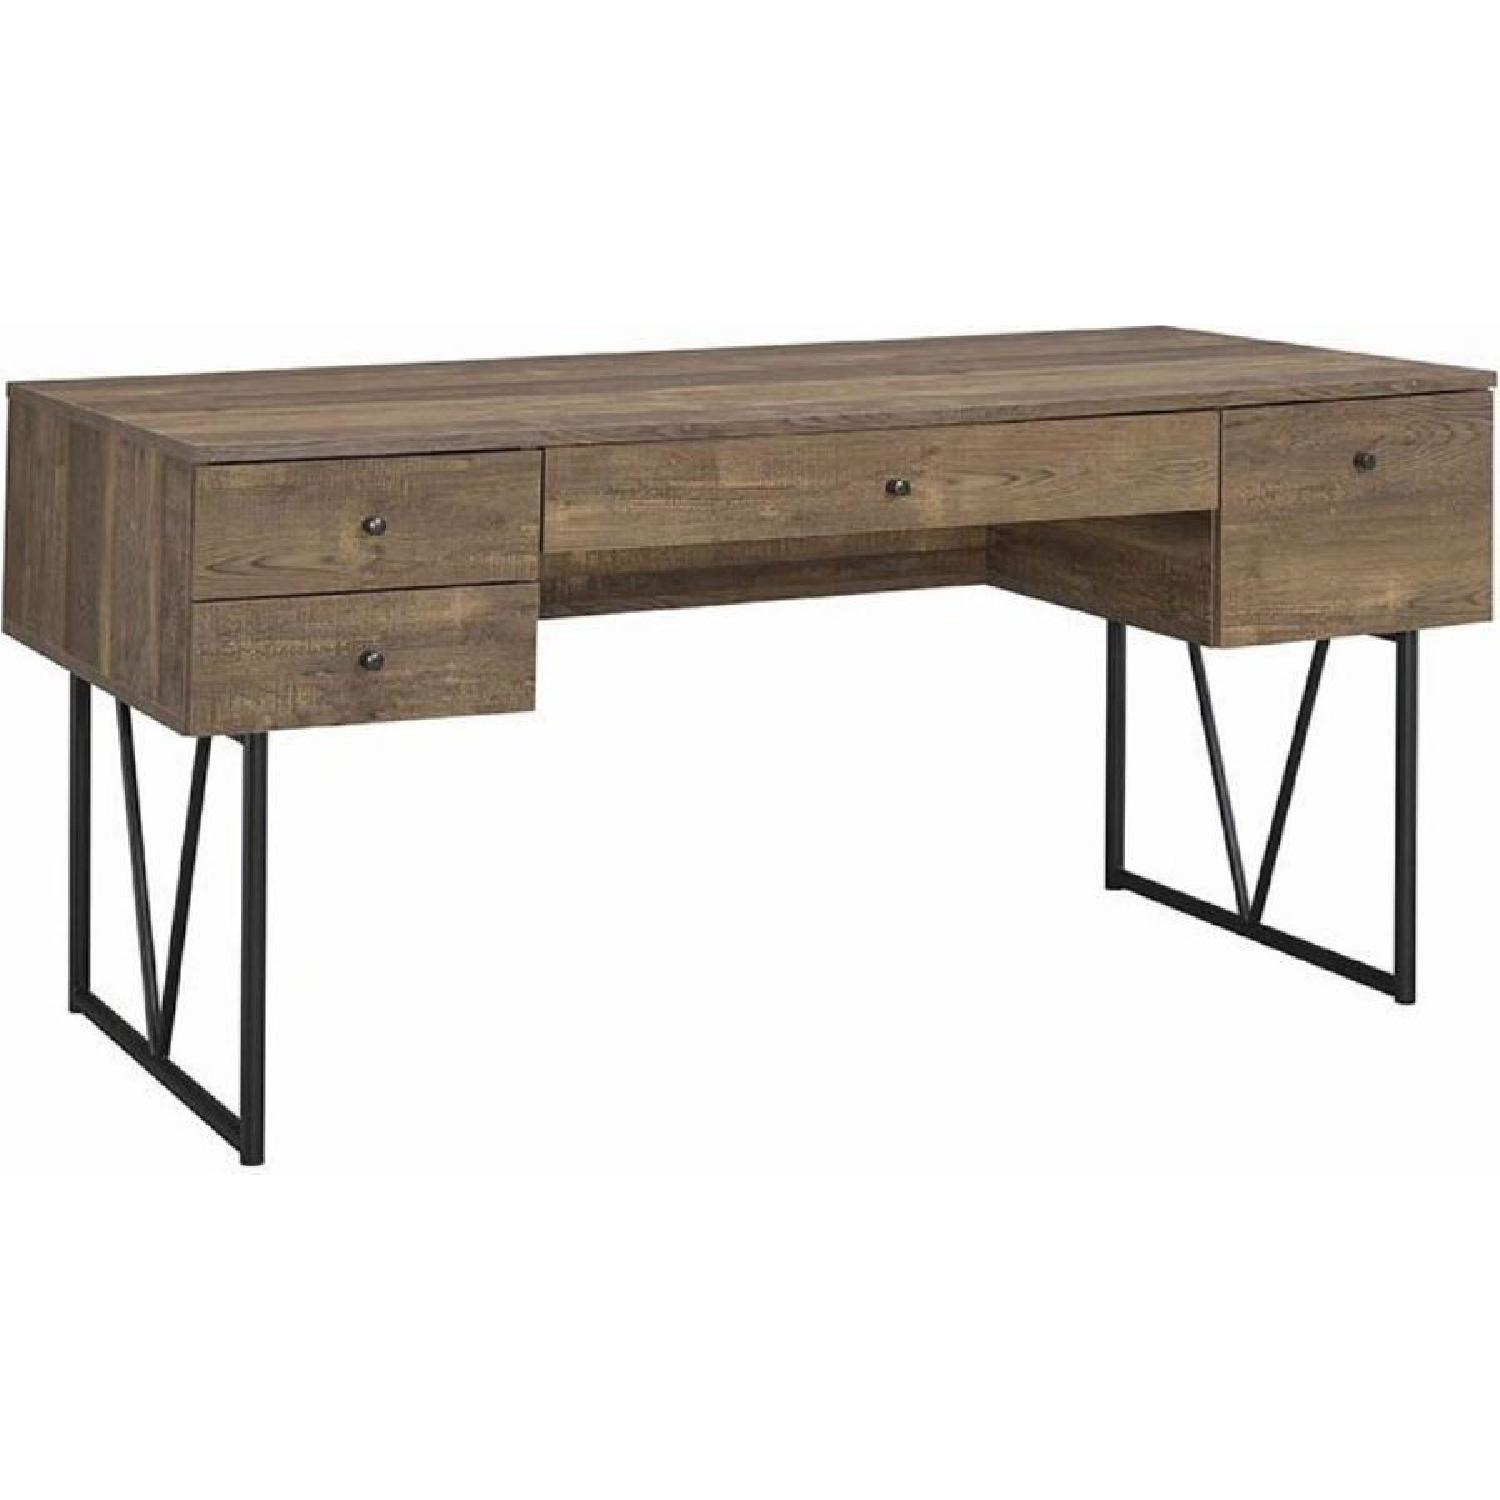 Rustic Oak Desk w/ Black Metal Frame Legs - image-3